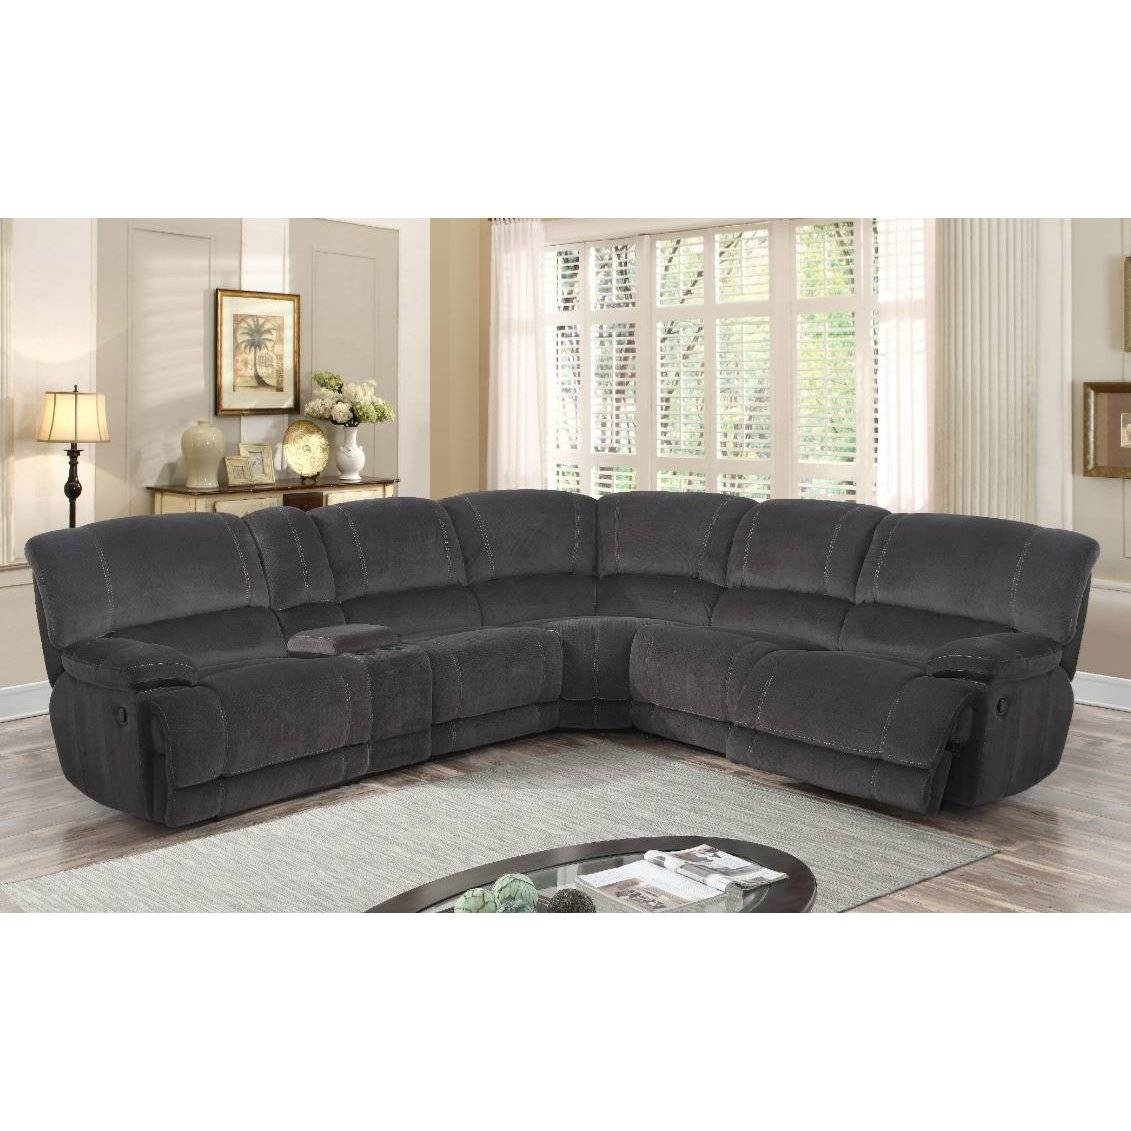 Awesome Most Comfortable Sectional Sofas 52 About Remodel Albany inside Albany Industries Sectional Sofa (Image 17 of 30)